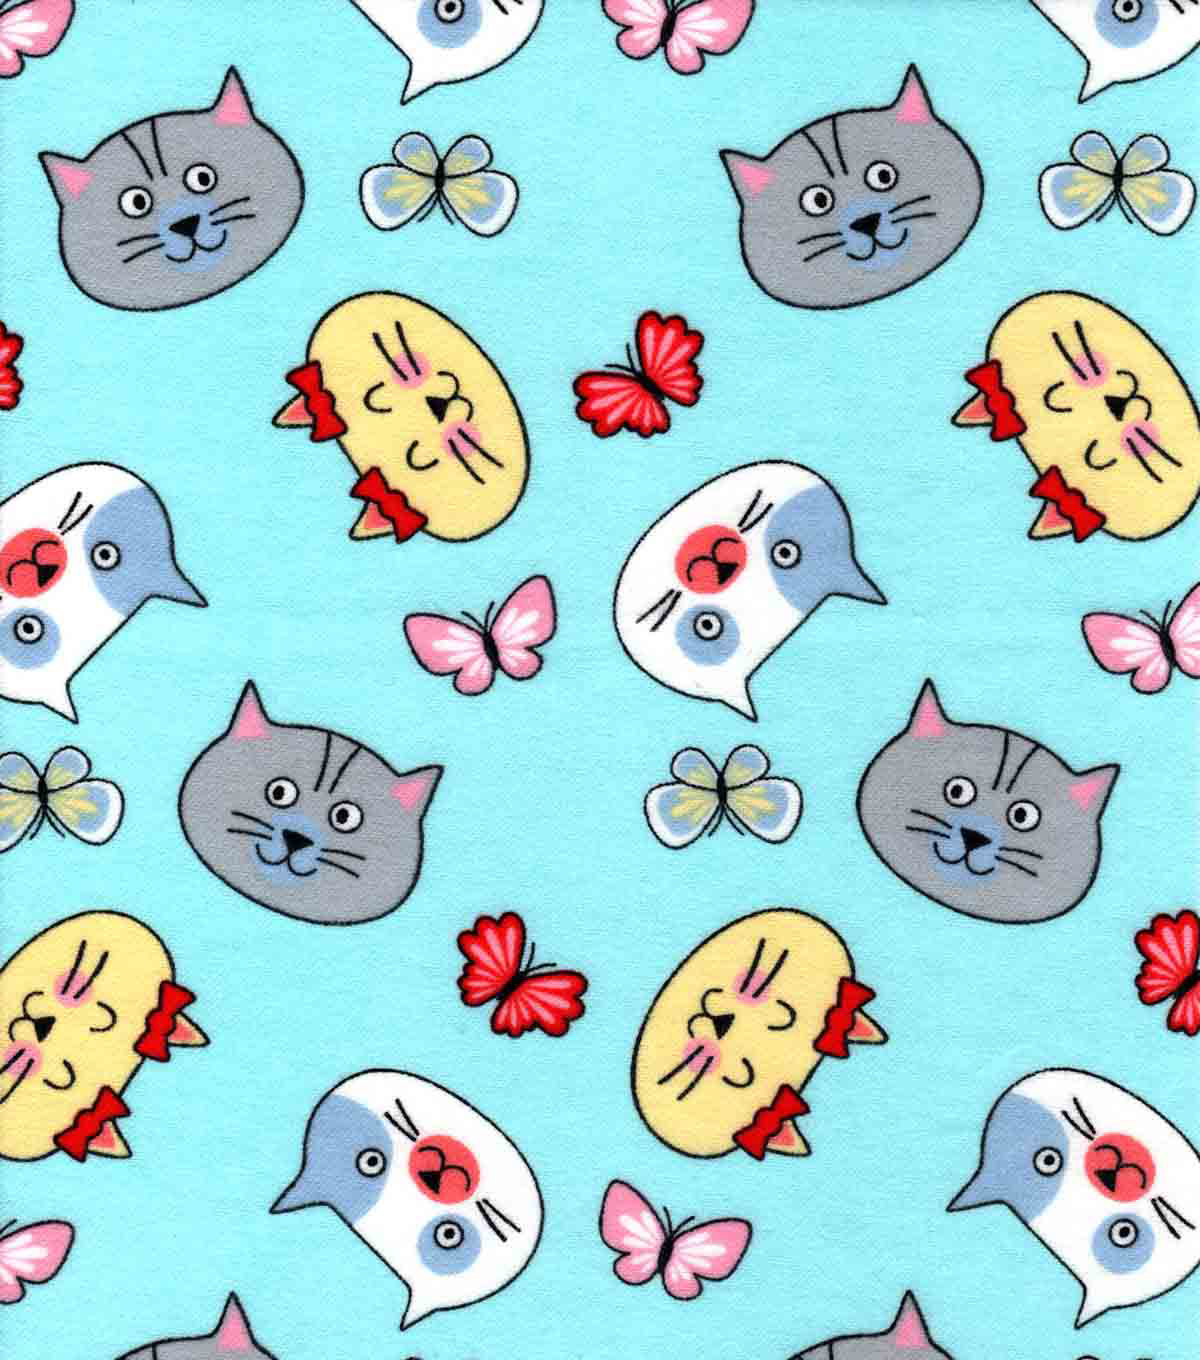 Snuggle Flannel Fabric-Cat Faces And Butterflies